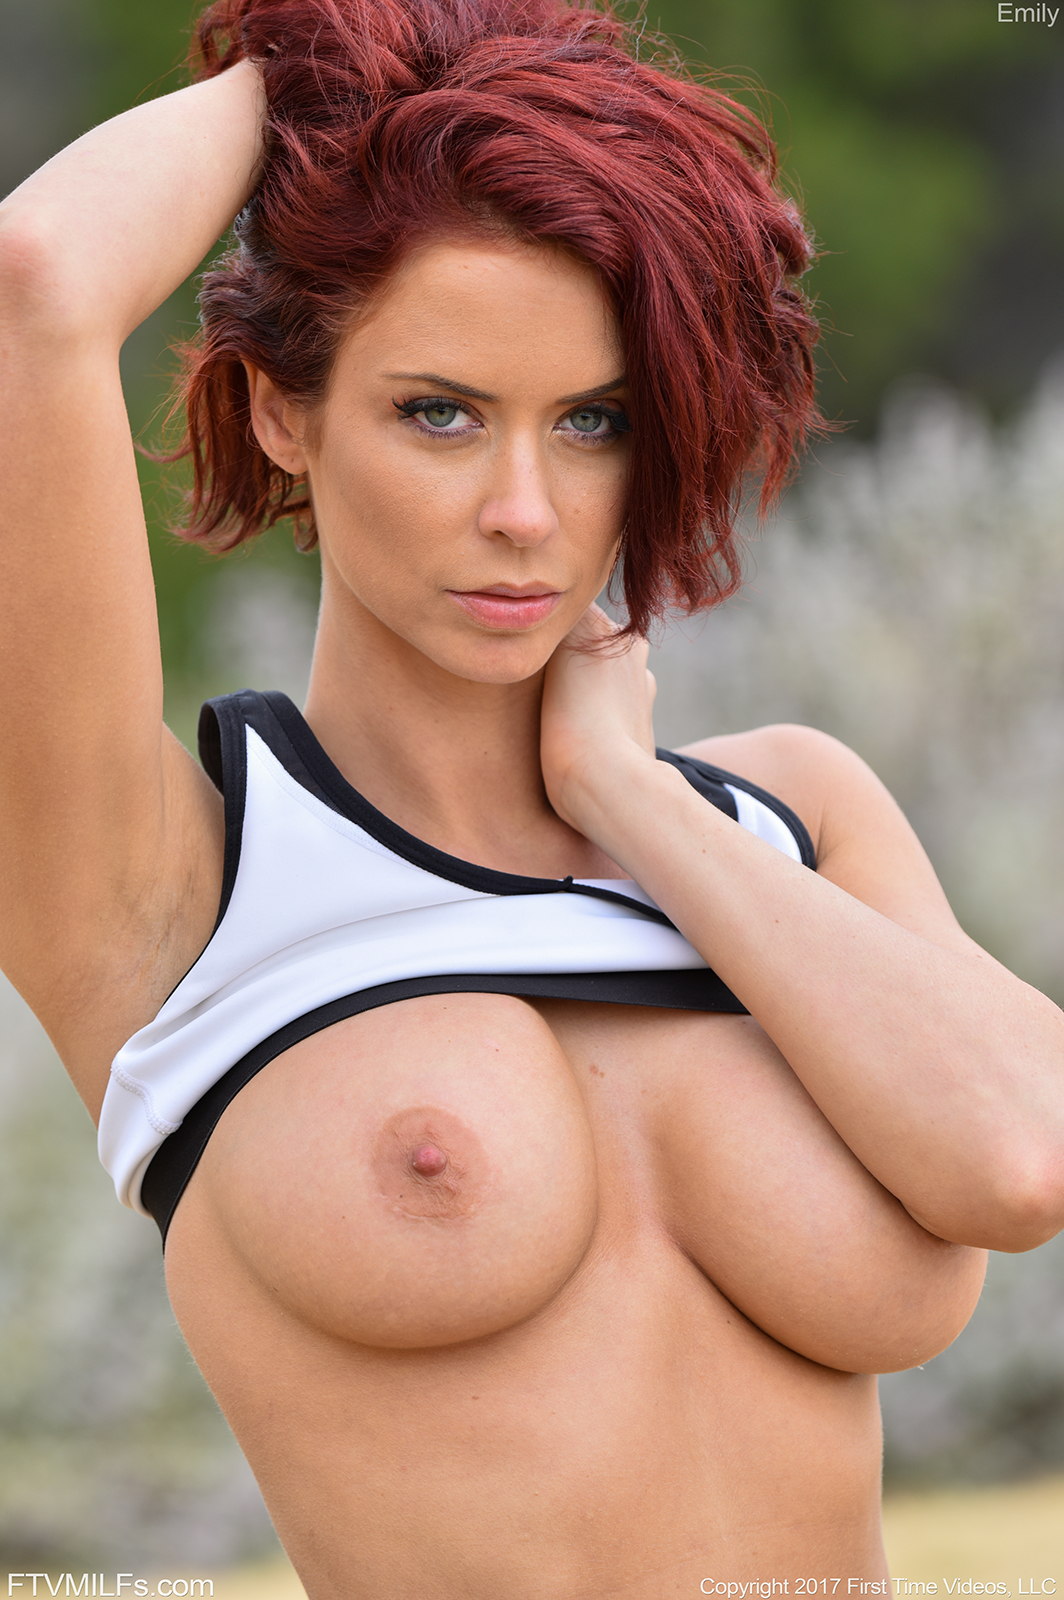 static ftvmilfs galleries emily her morning workout 4